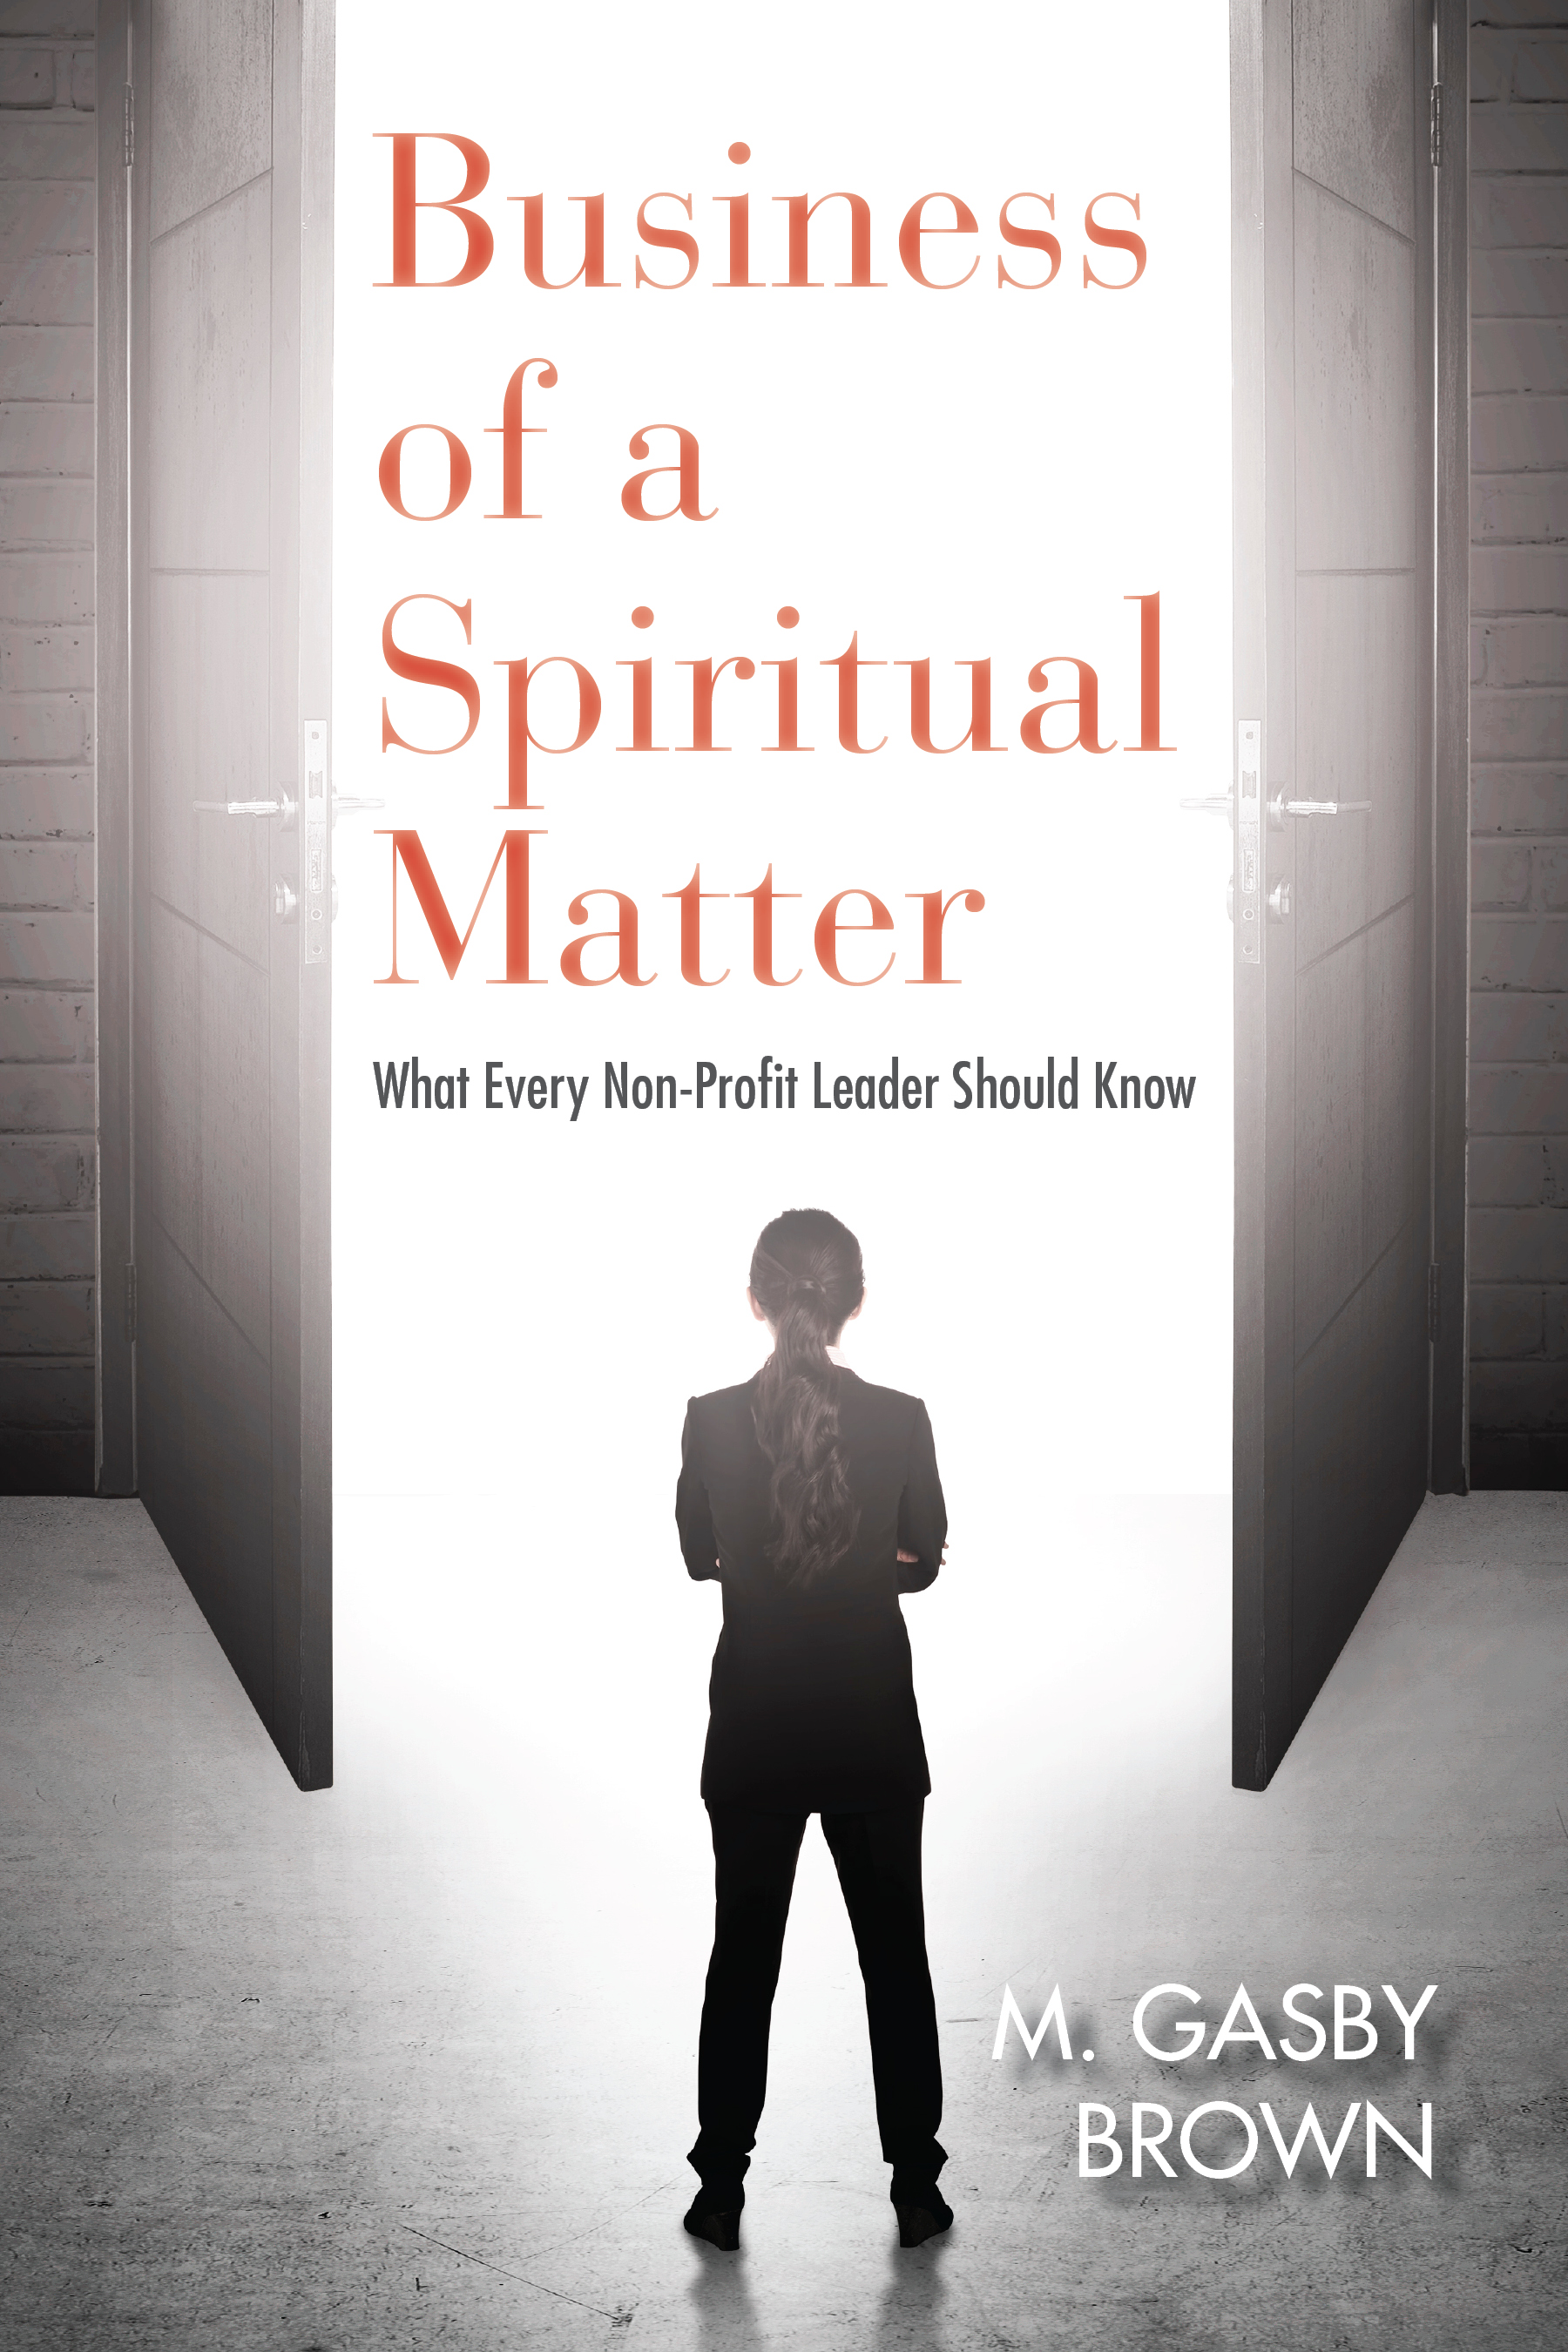 Business of a Spiritual Matter